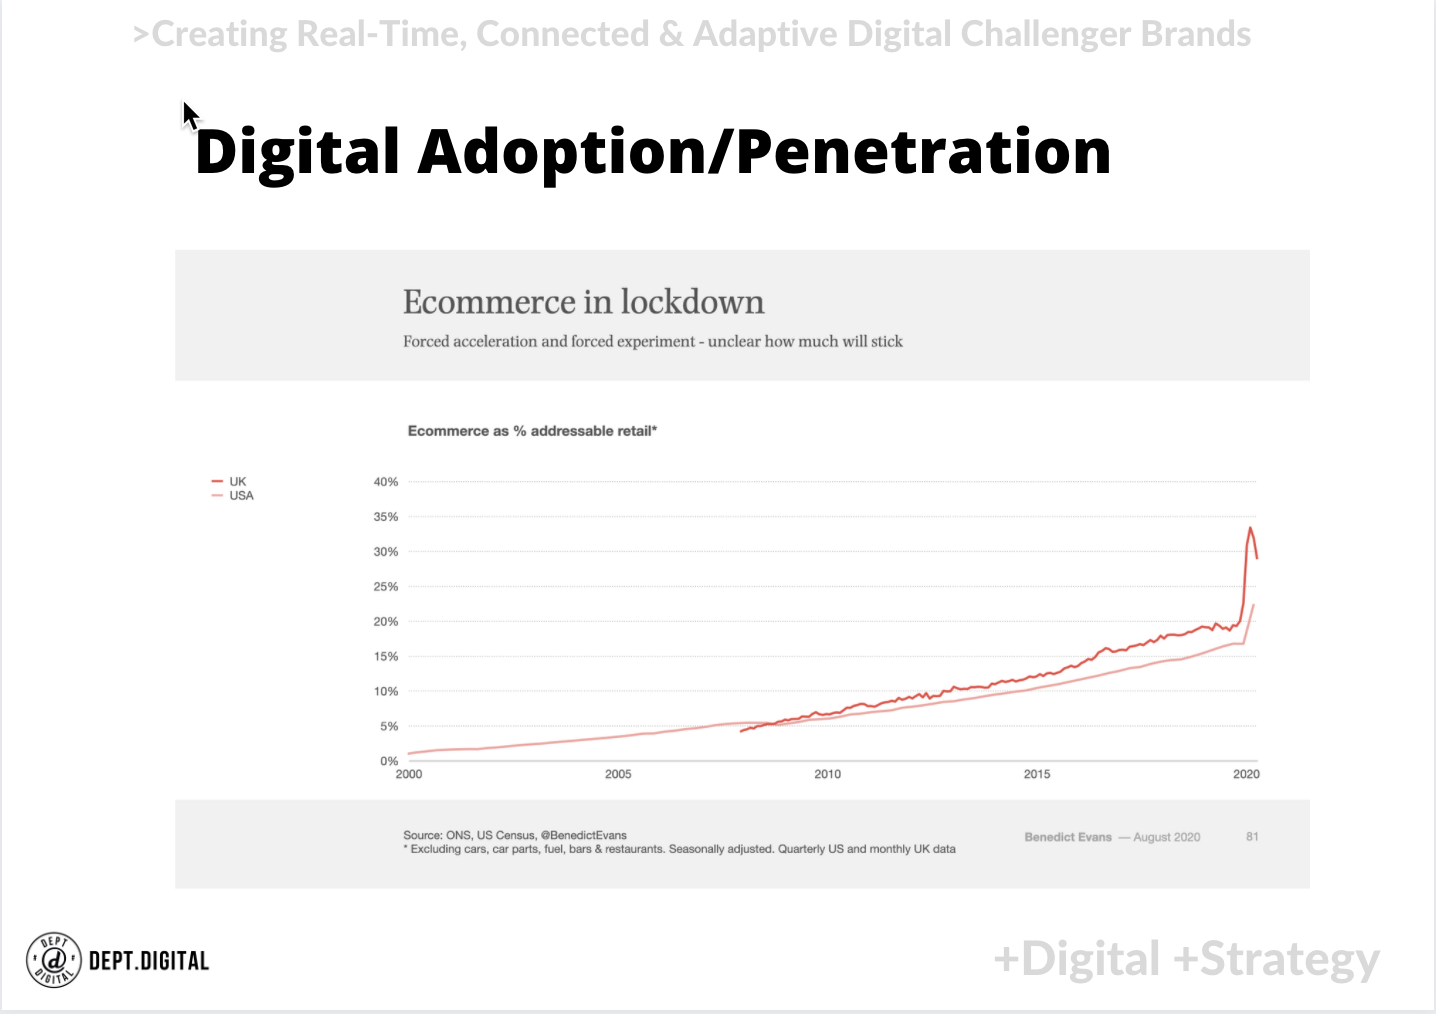 The digital adoption and penetration of digital capable businesses is still only around 25% on average year over year, peakin